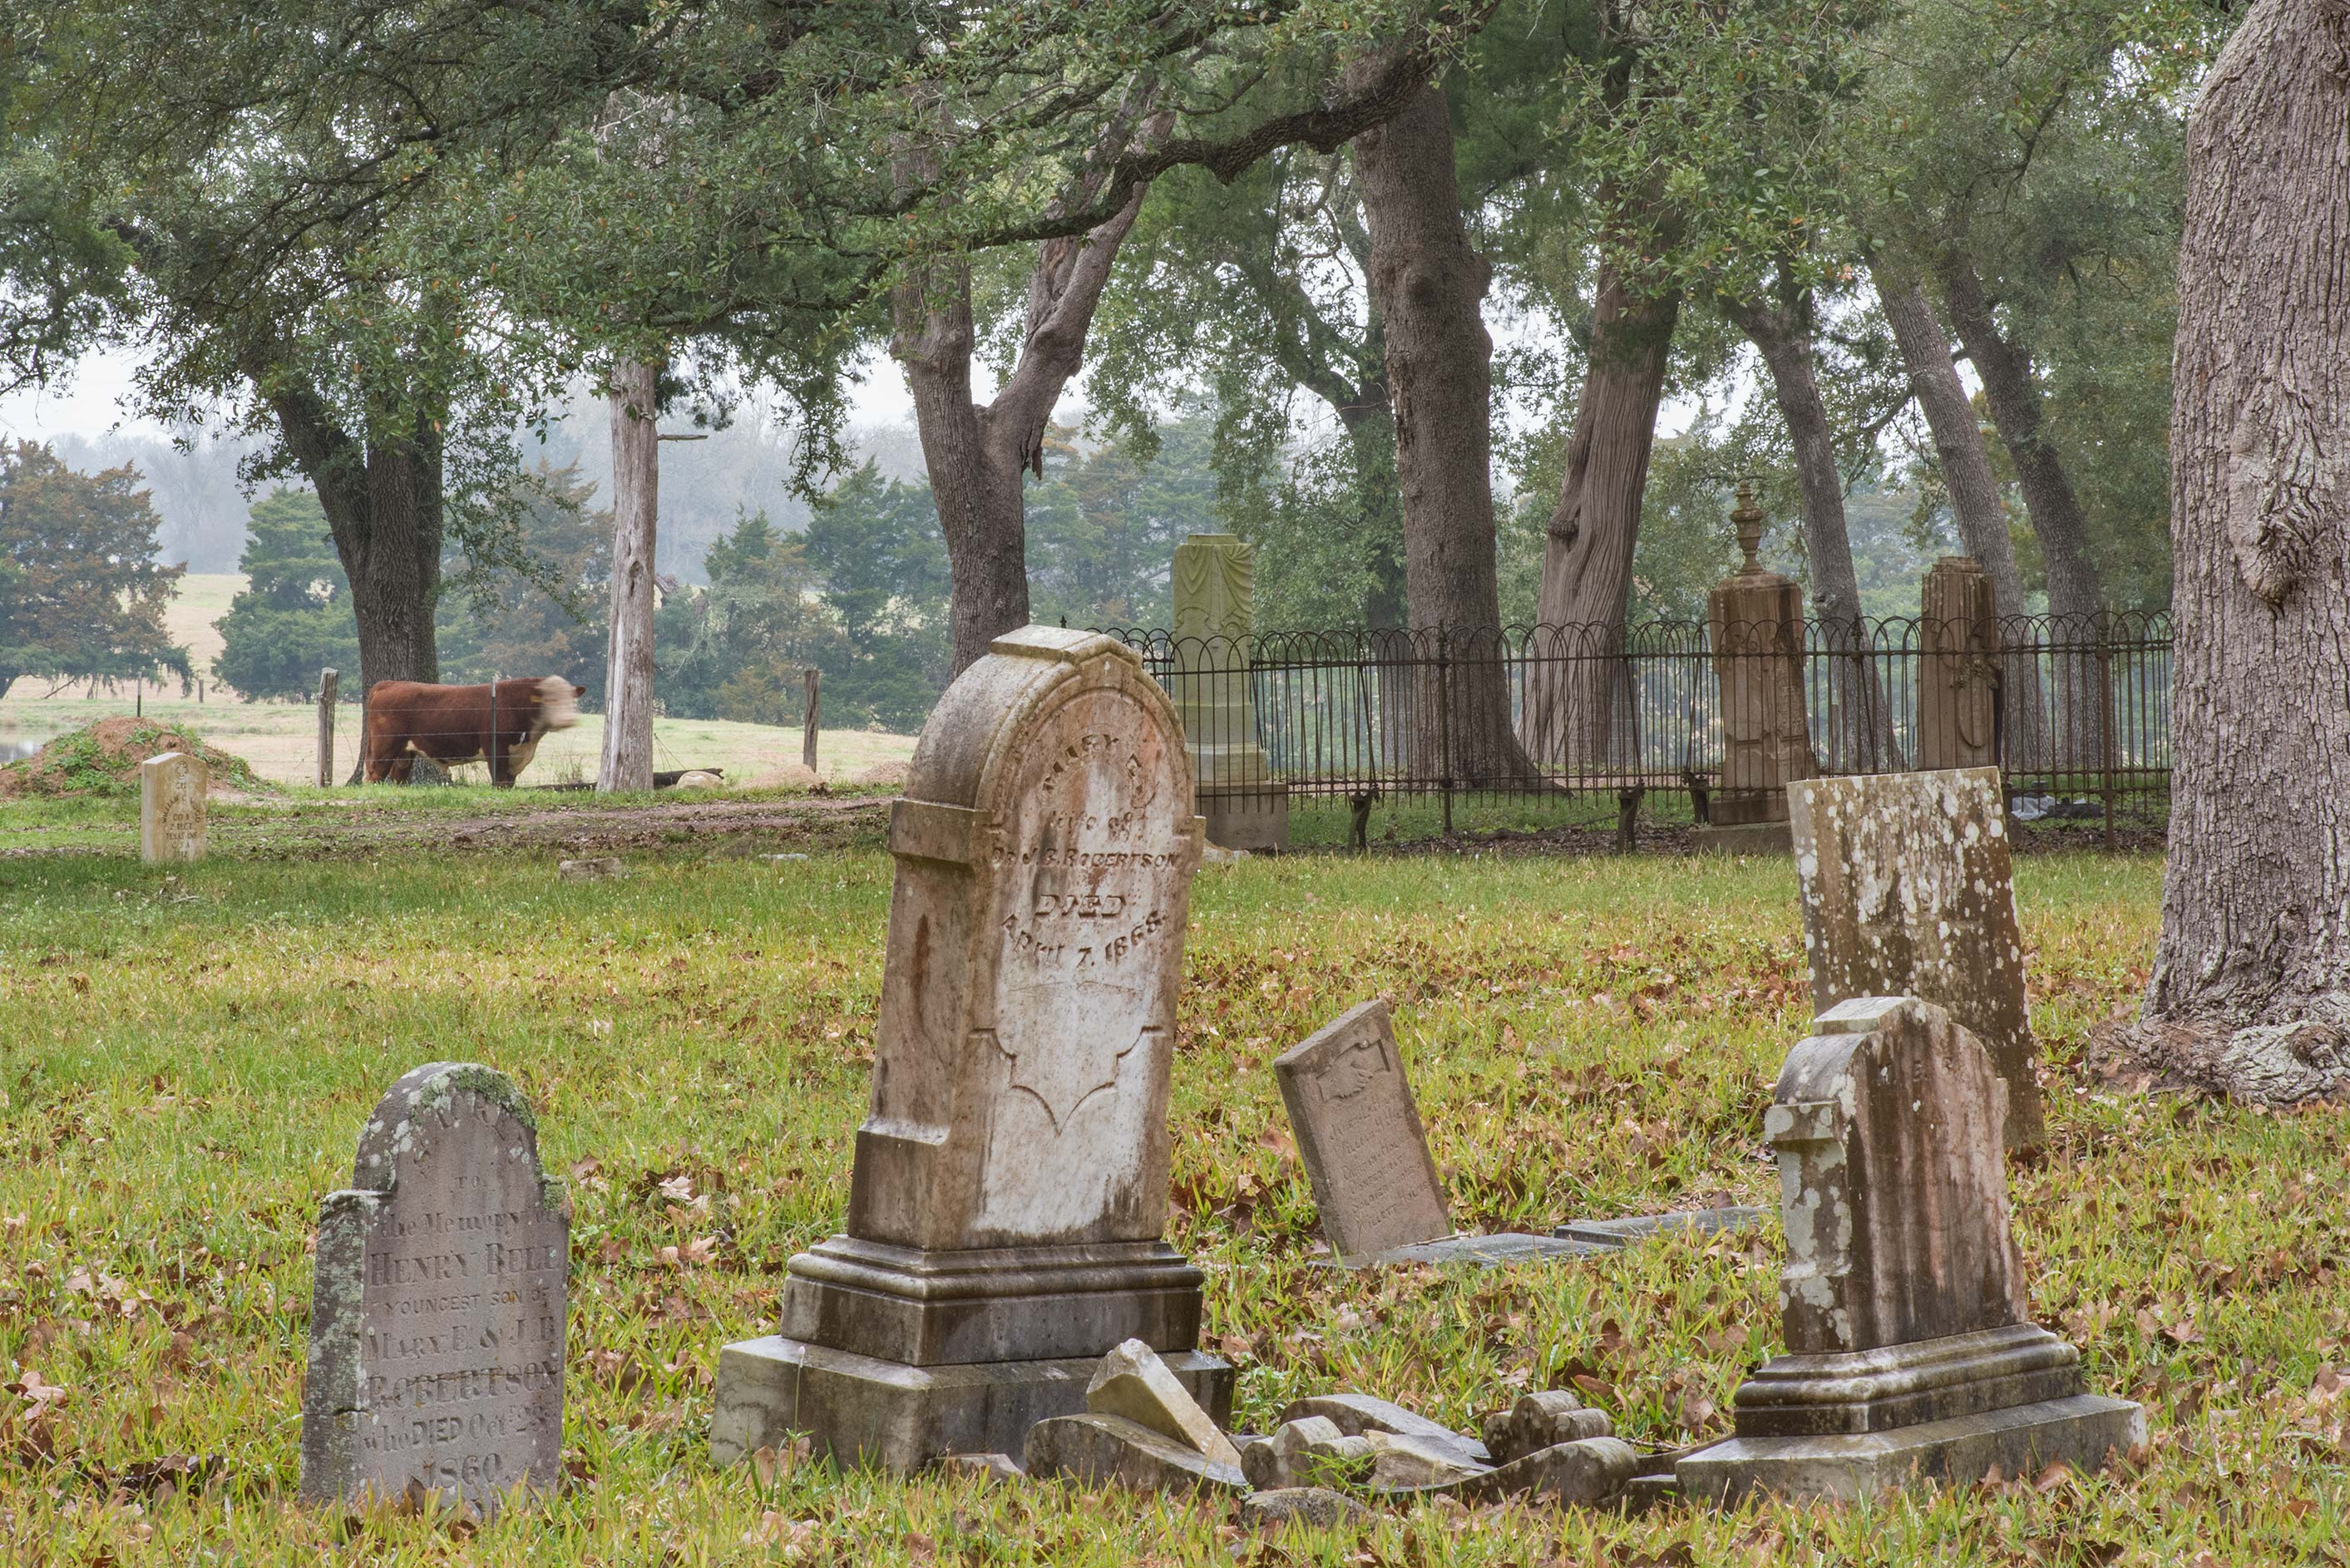 Tombs and cows in Historic Independence Cemetery near Independence. Texas